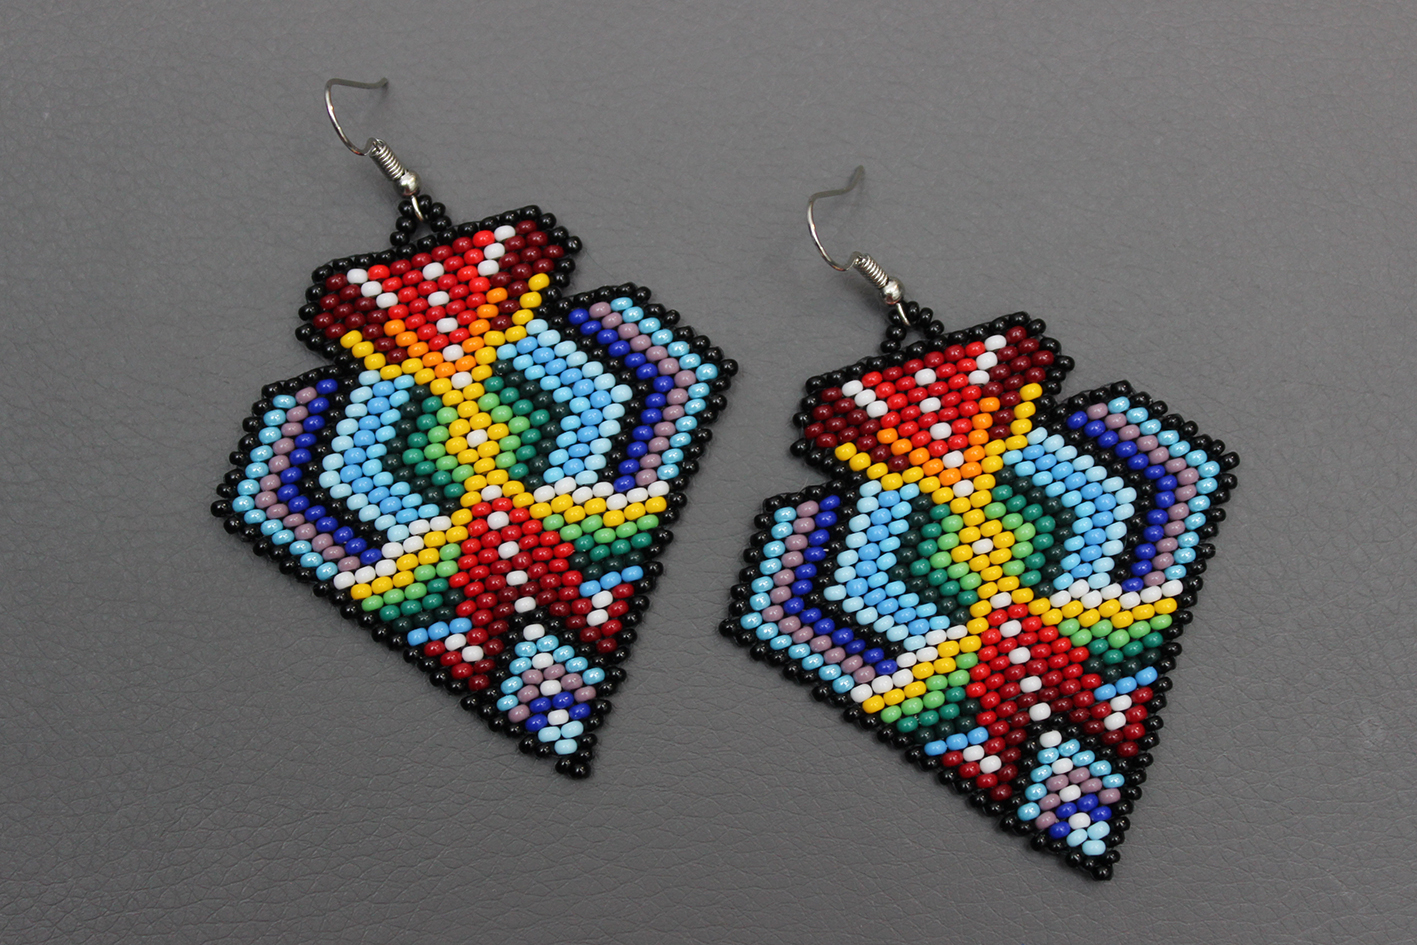 Native American Beaded Earrings Patterns Free Awesome Inspiration Ideas